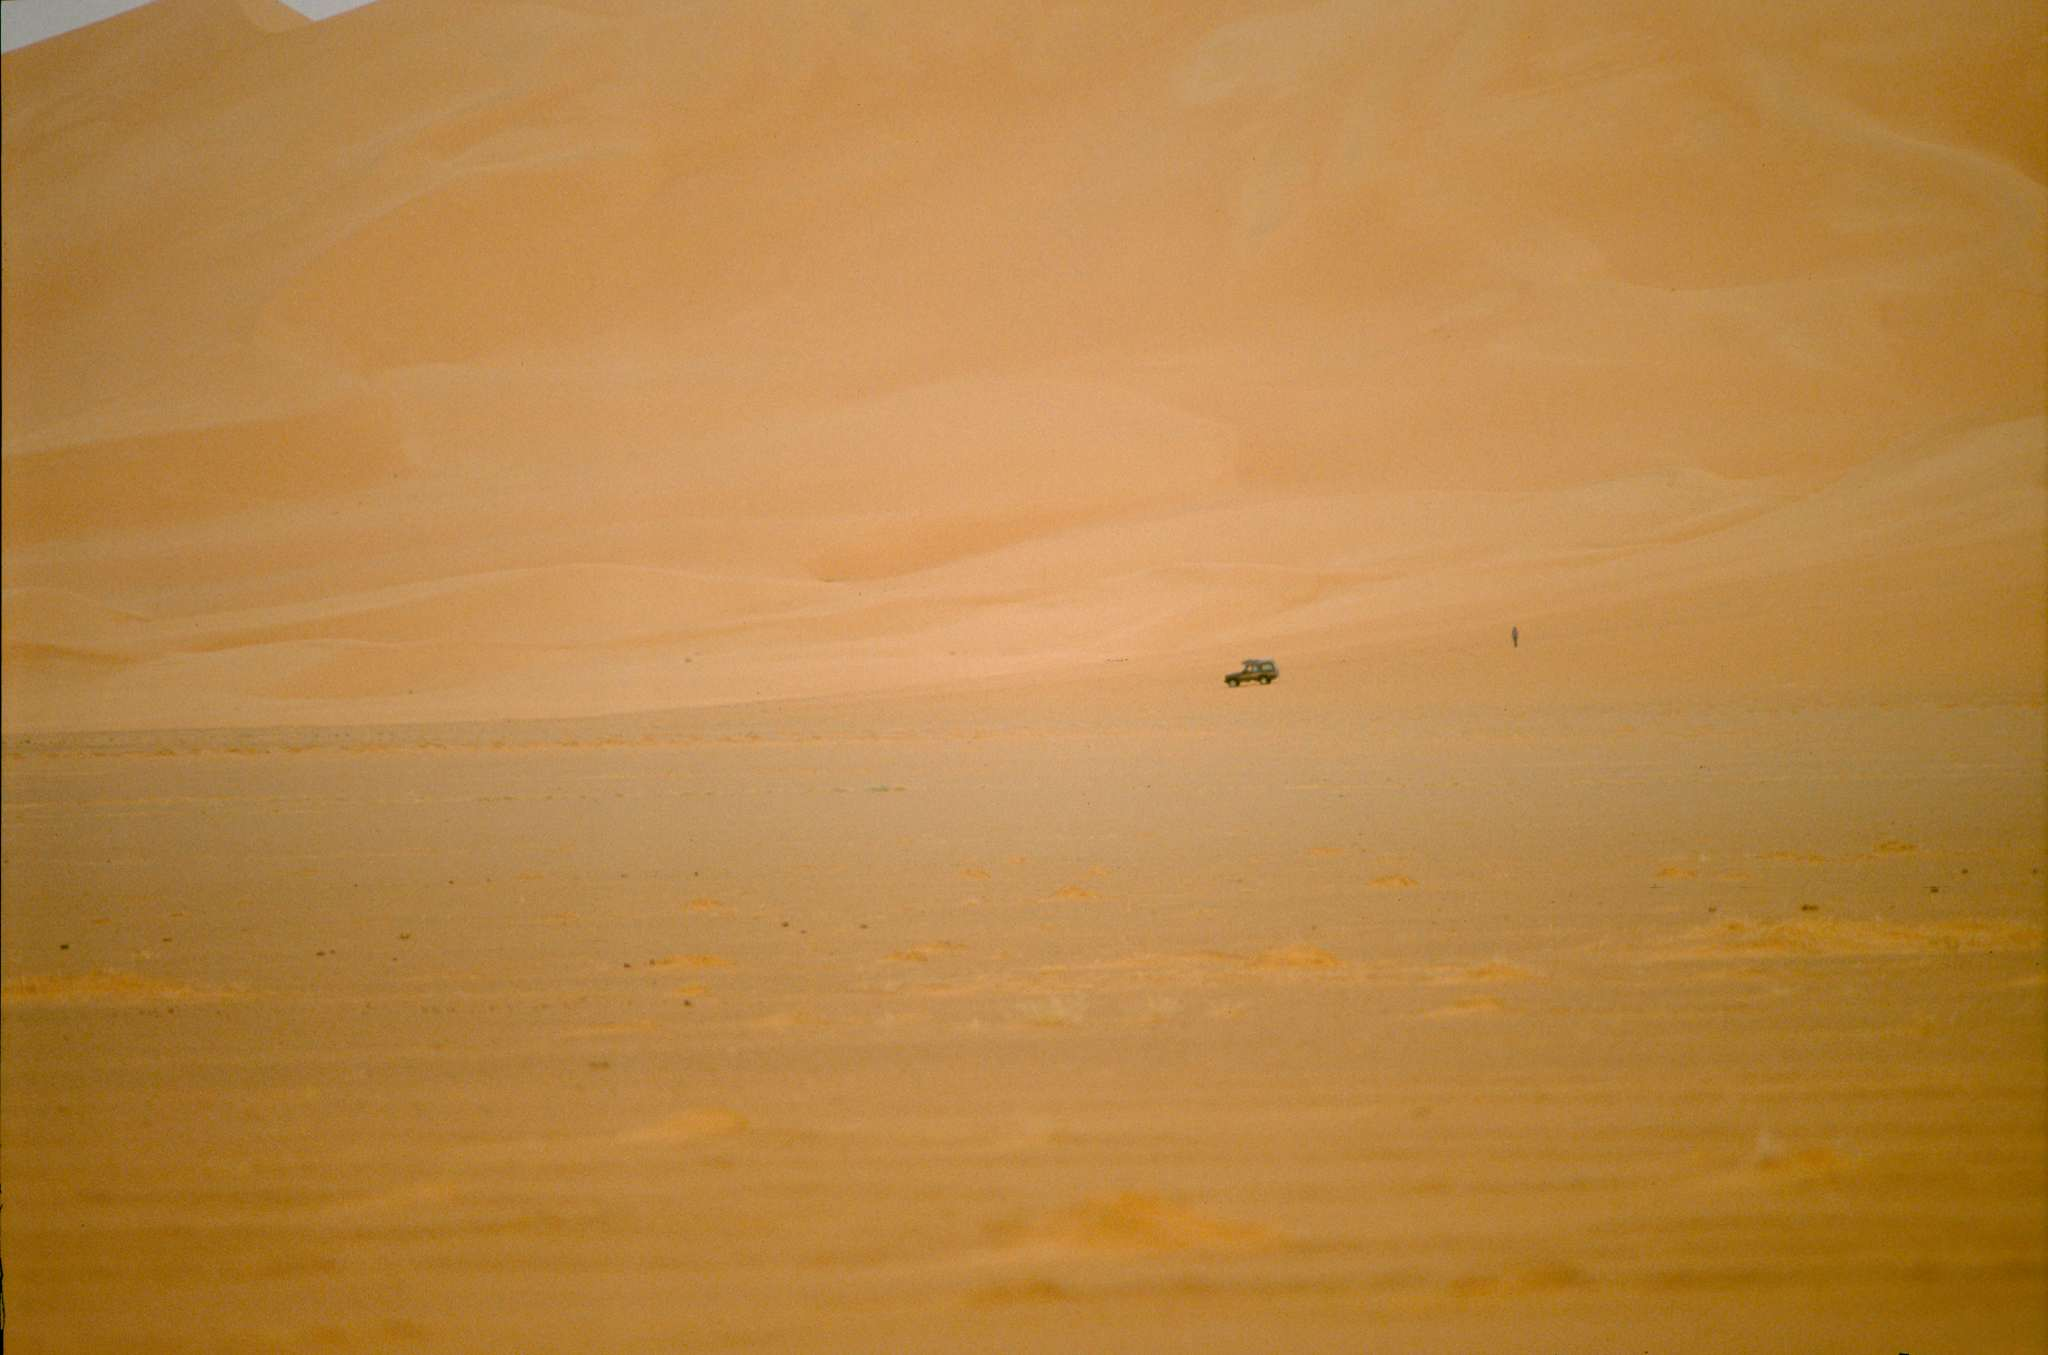 vehicle and man in dune landscape